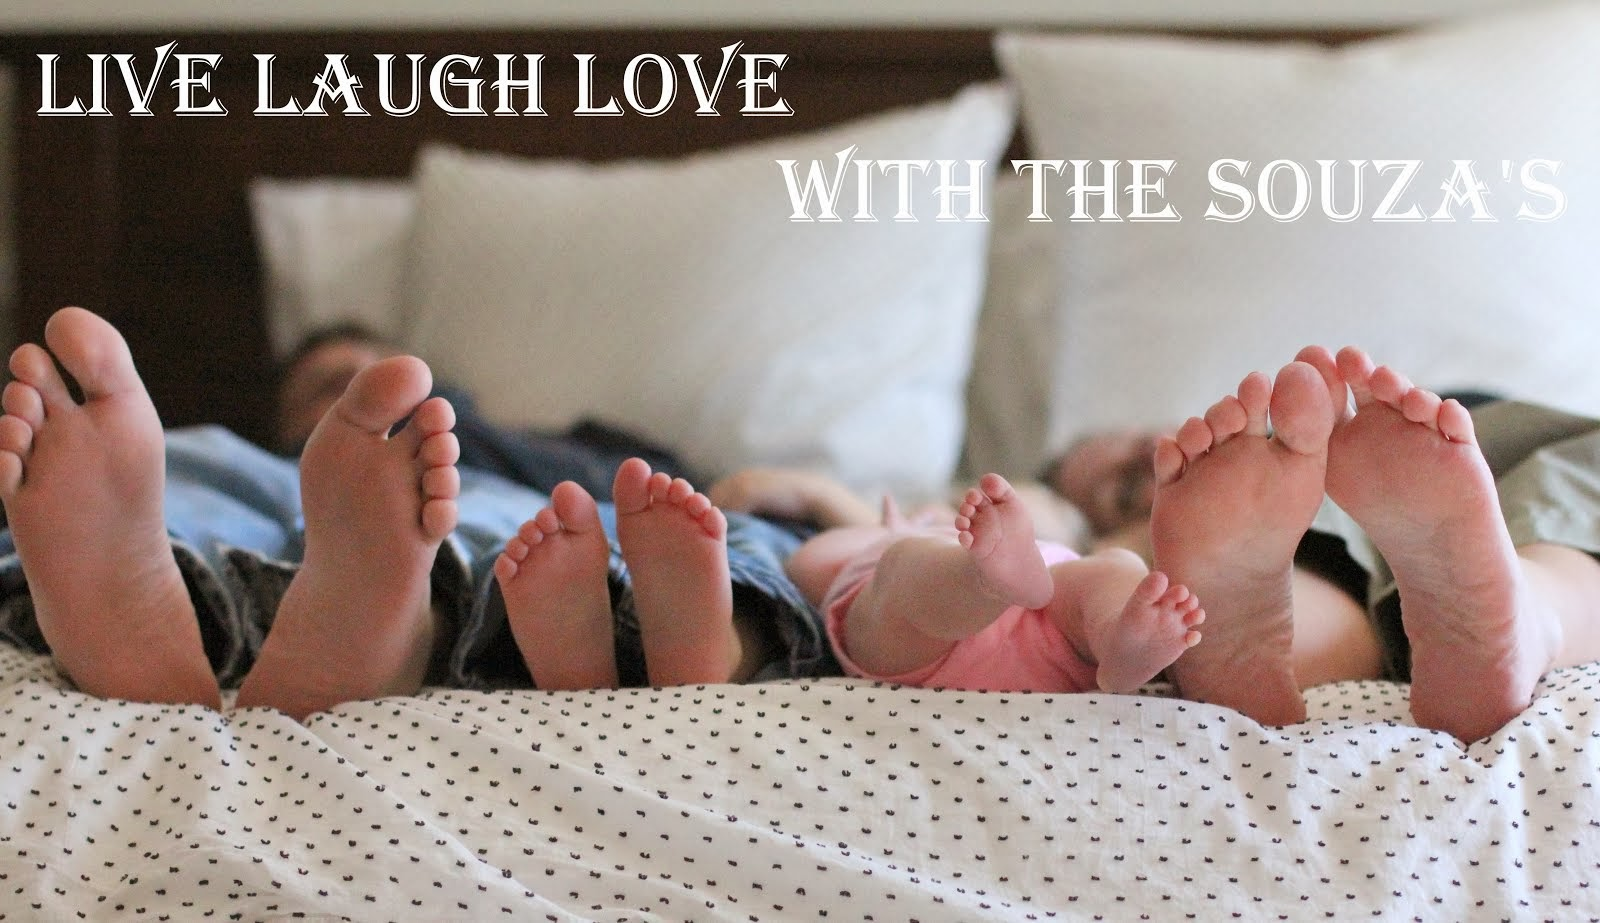 Live Laugh Love...with The Souza's